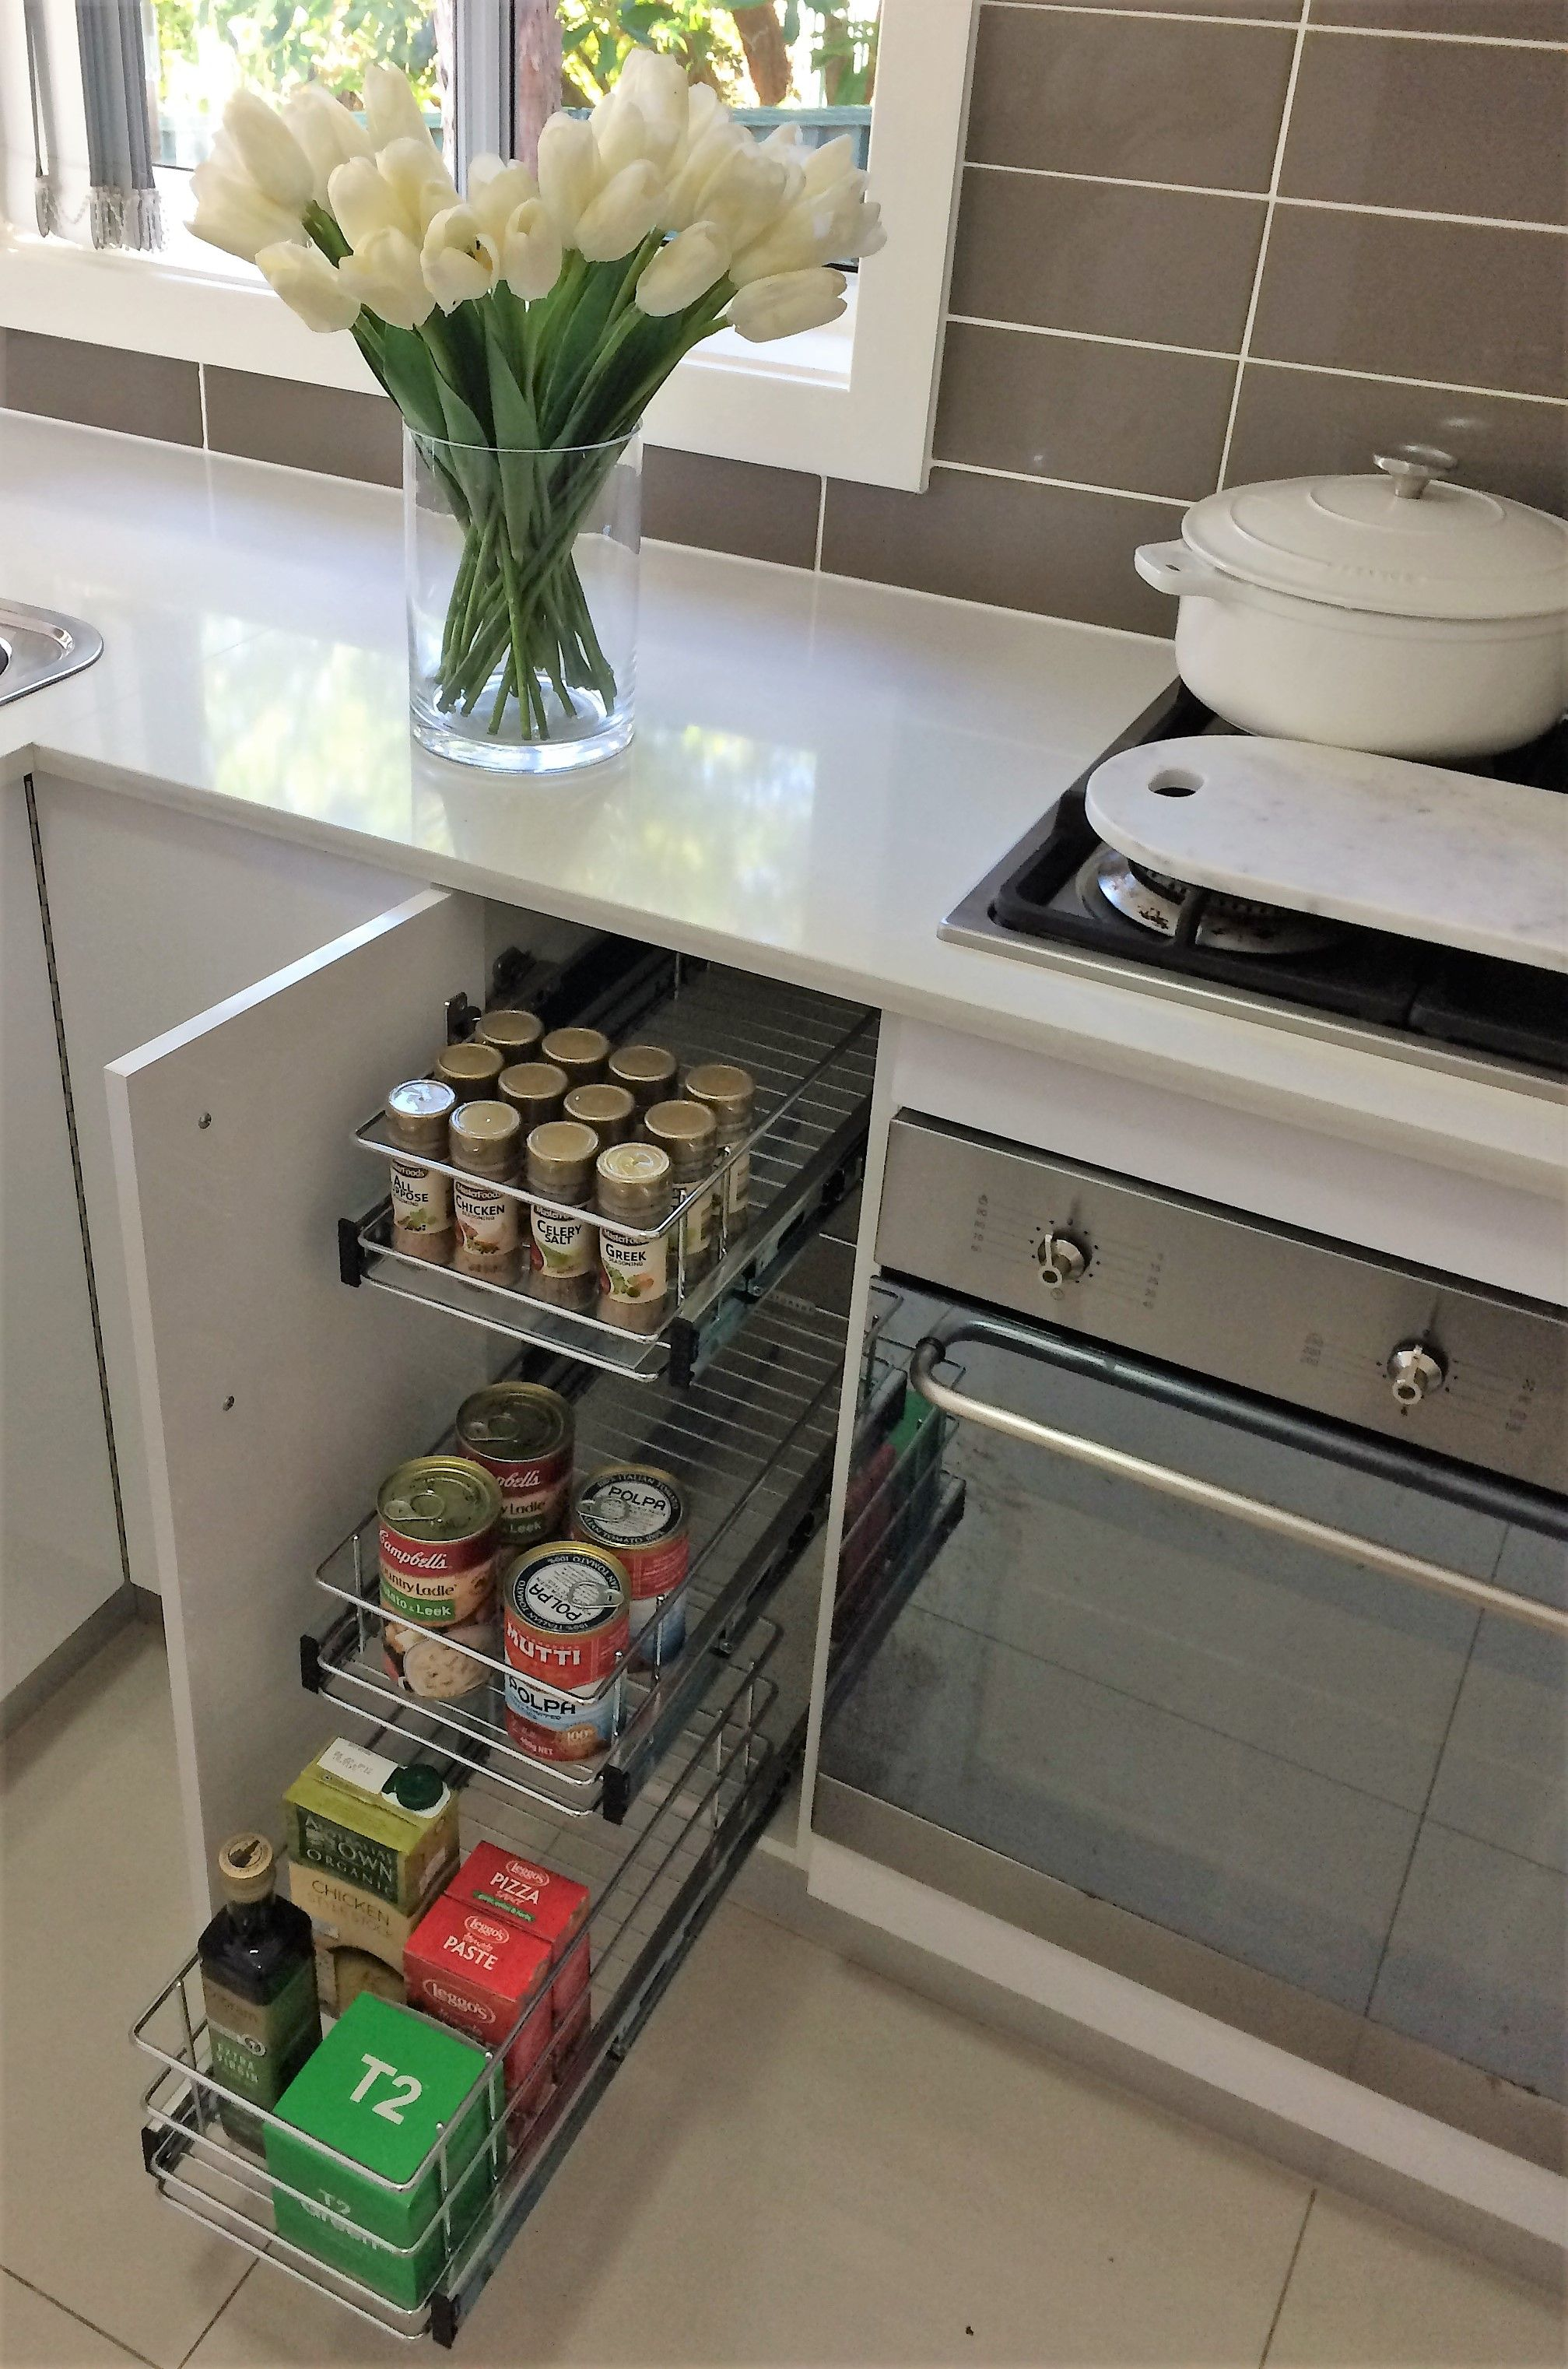 Pull Out Wire Baskets For Narrow Kitchen Cupboard Storage Tansel Storage Kitchen Design Small Kitchen Organization Pantry Narrow Cabinet Kitchen